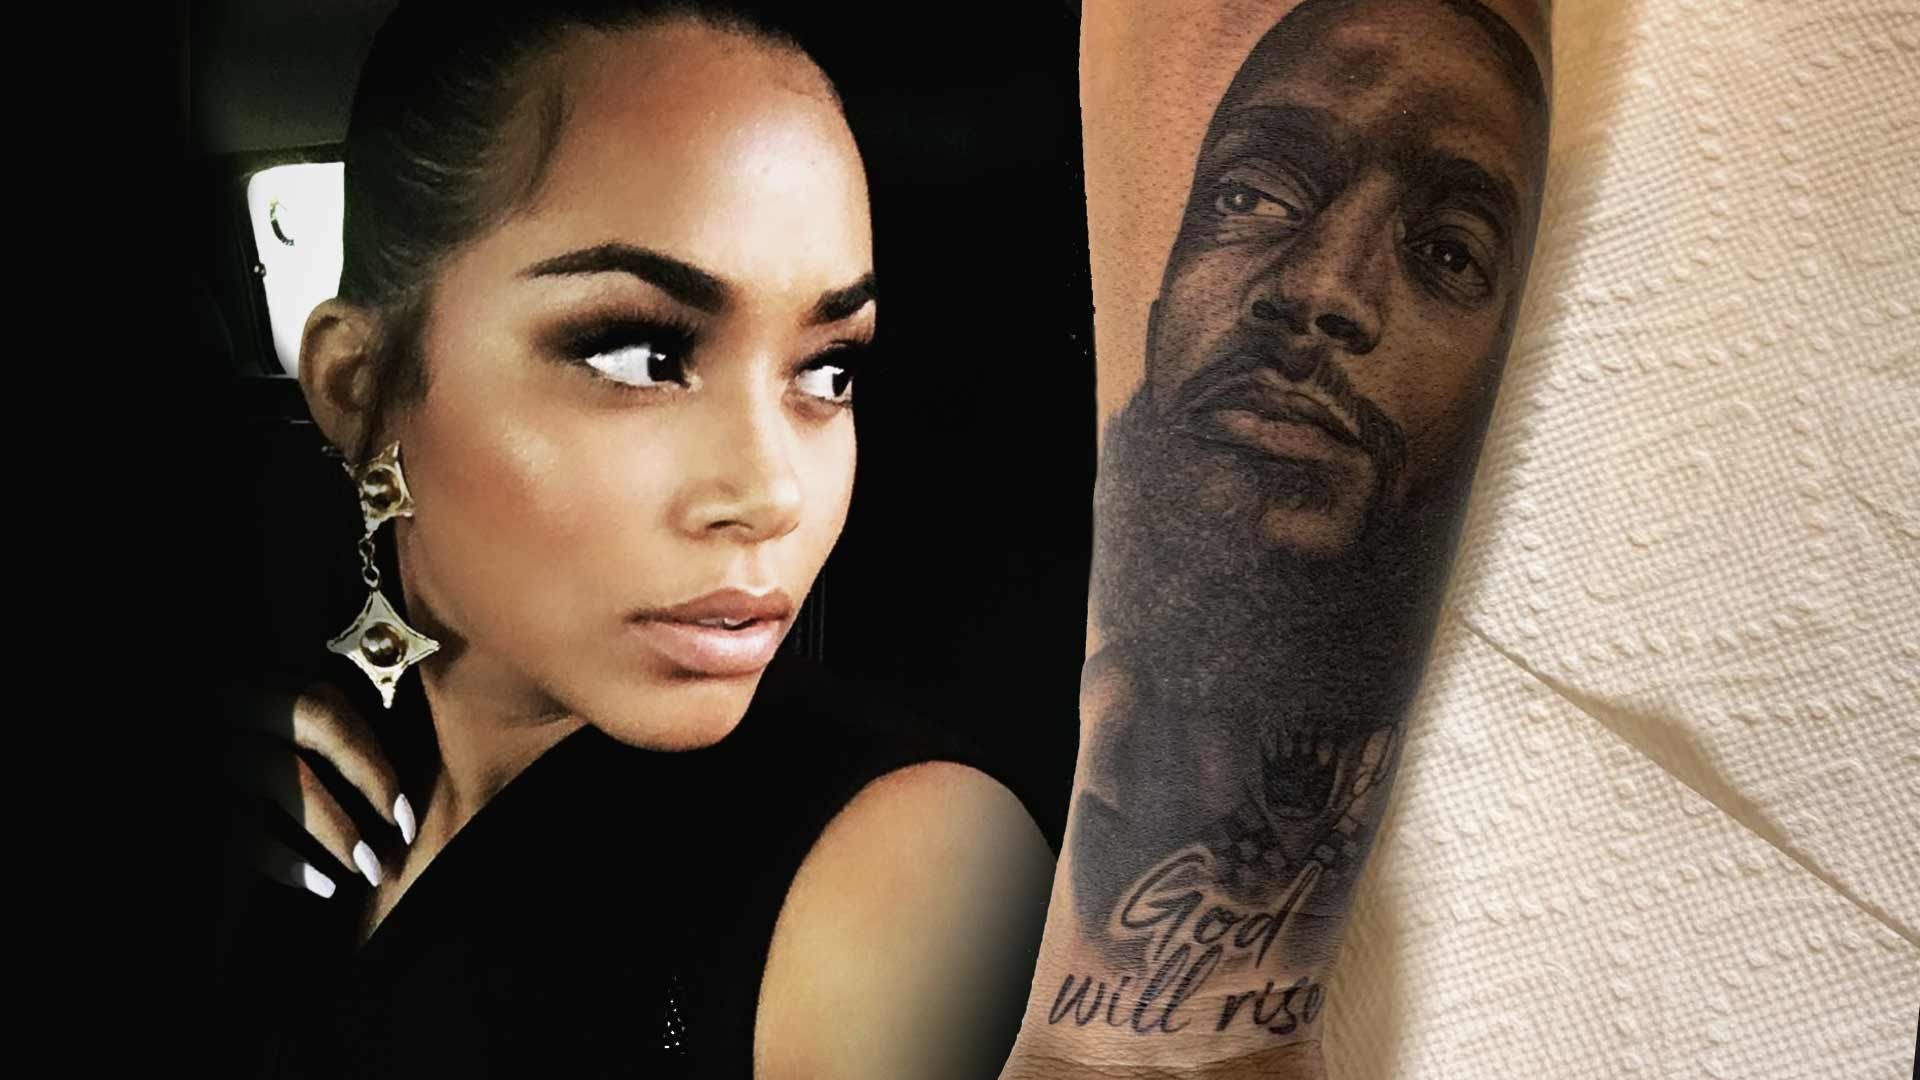 Lauren London Inks Nipsey Hussle's Face On Her Body